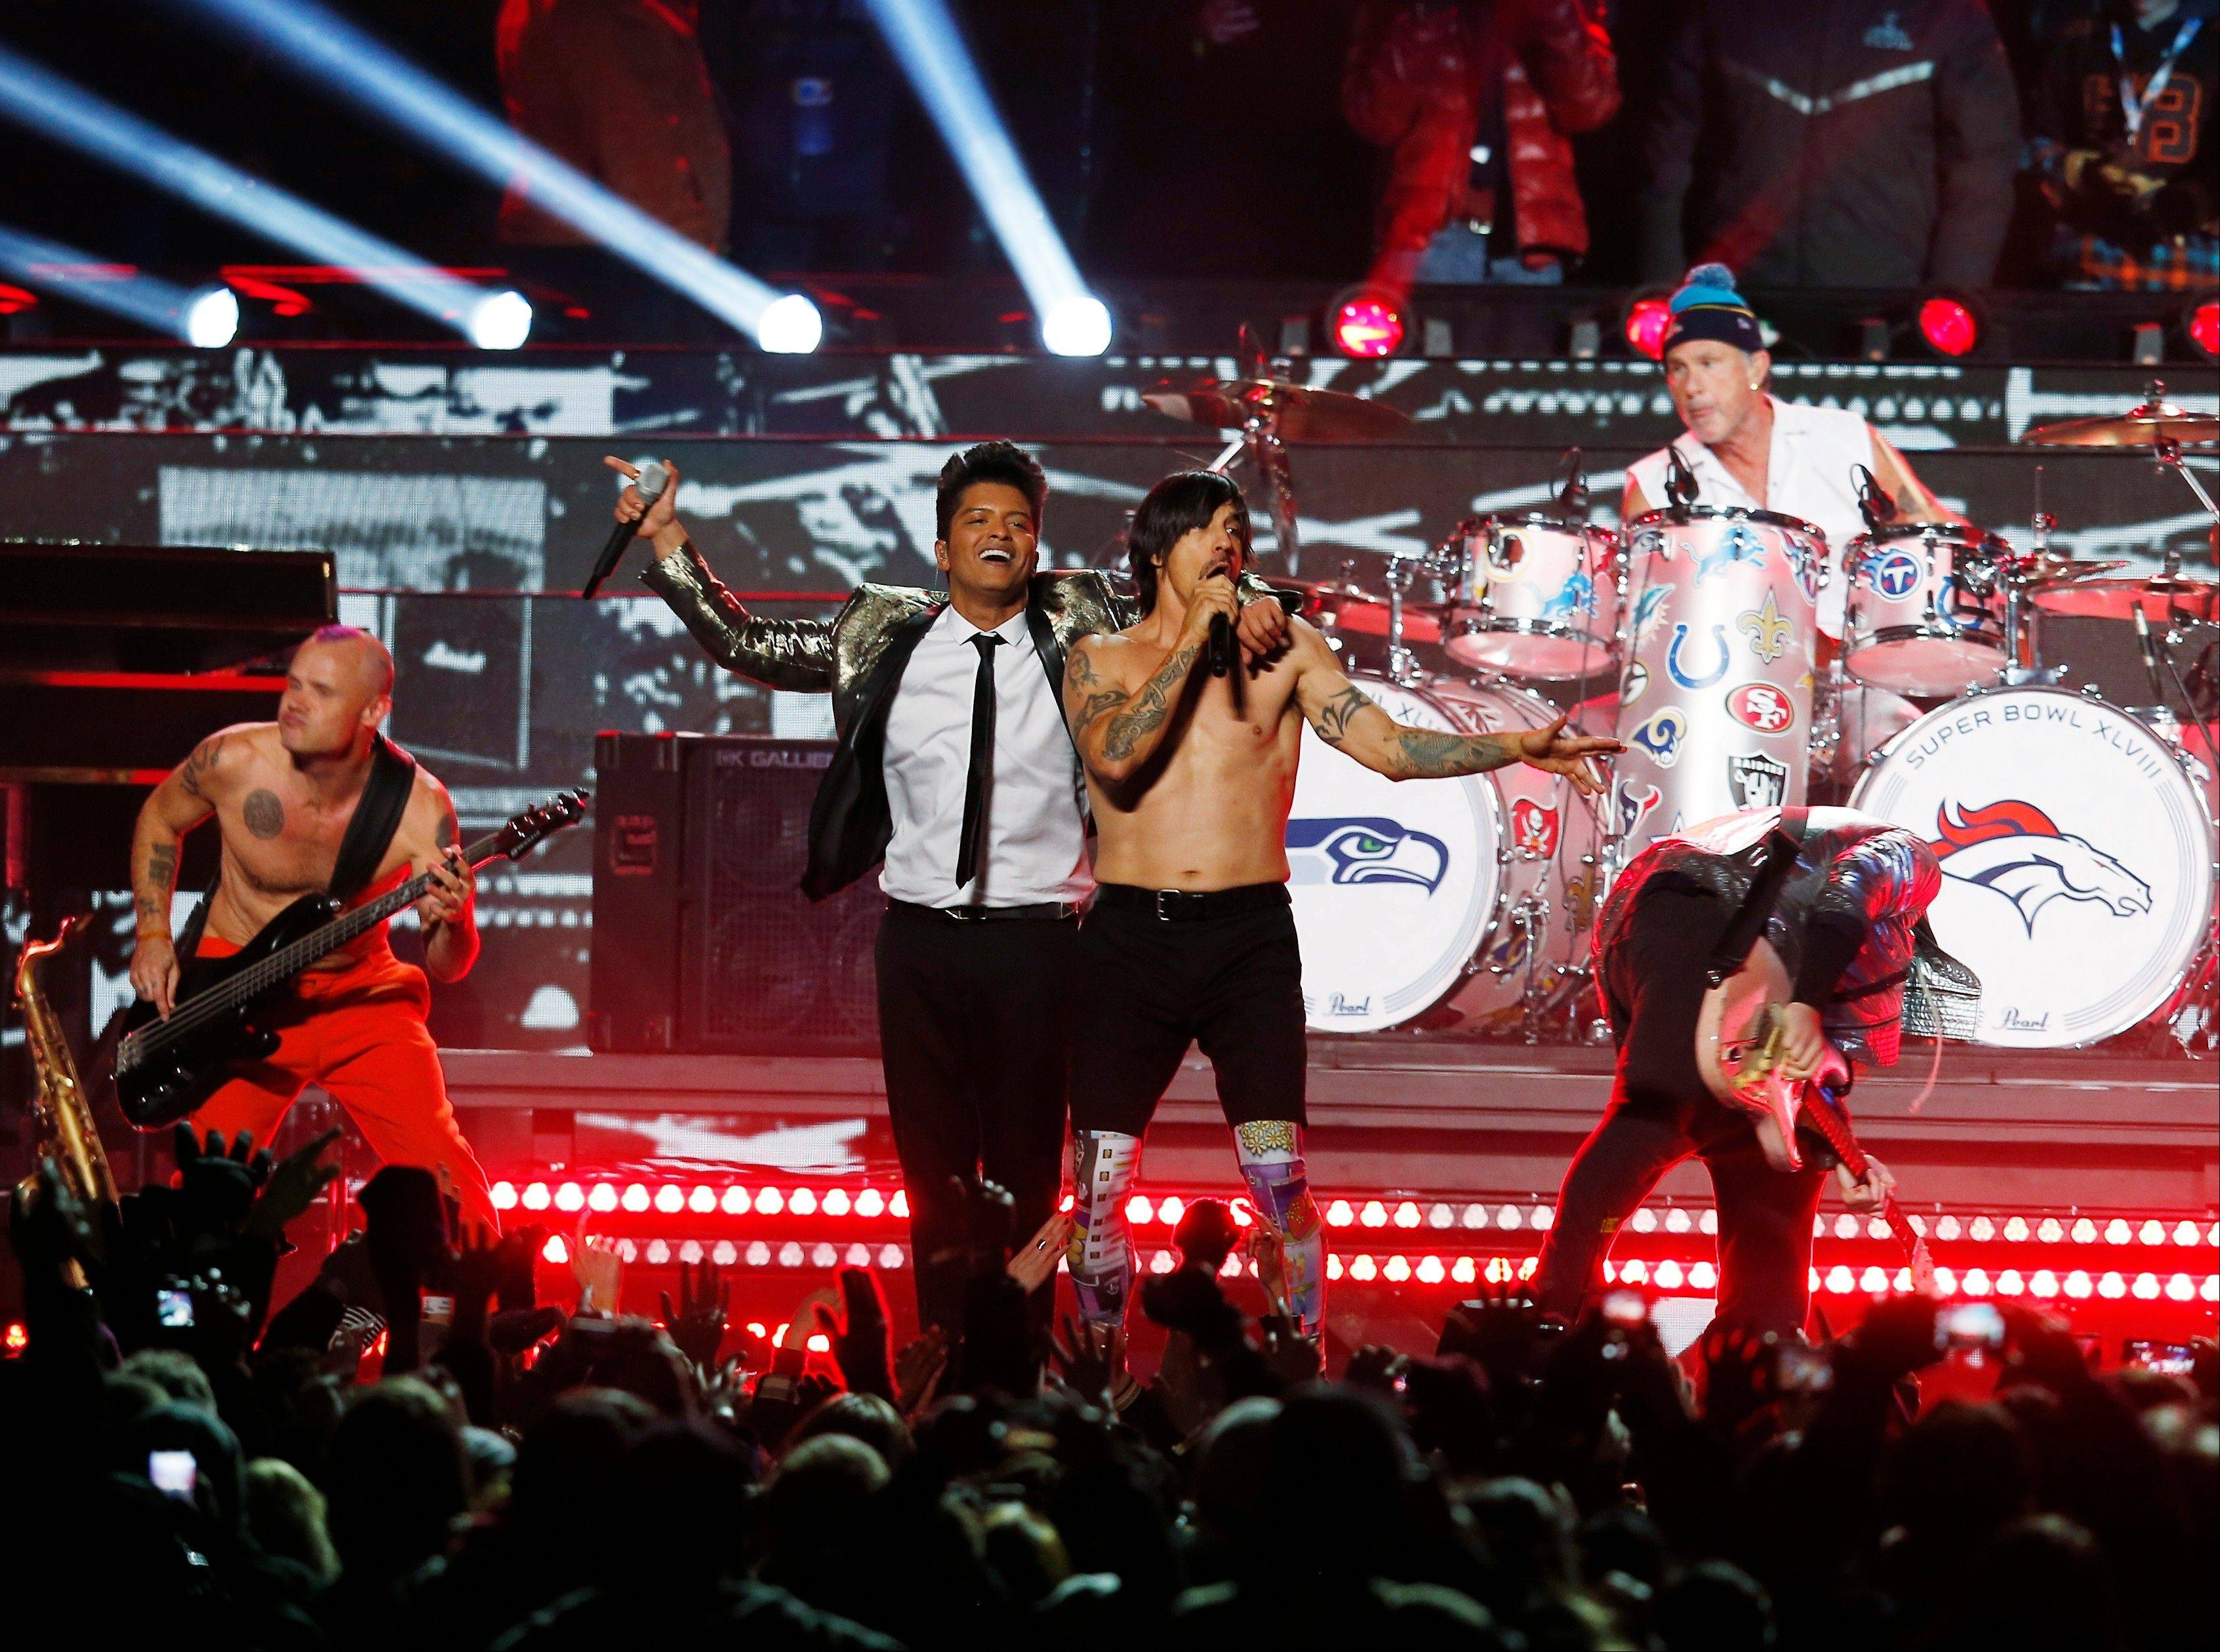 Bruno Mars, left, performs during the halftime show of the NFL Super Bowl XLVIII football game at MetLife Stadium in East Rutherford, New Jersey on Sunday, February 2.